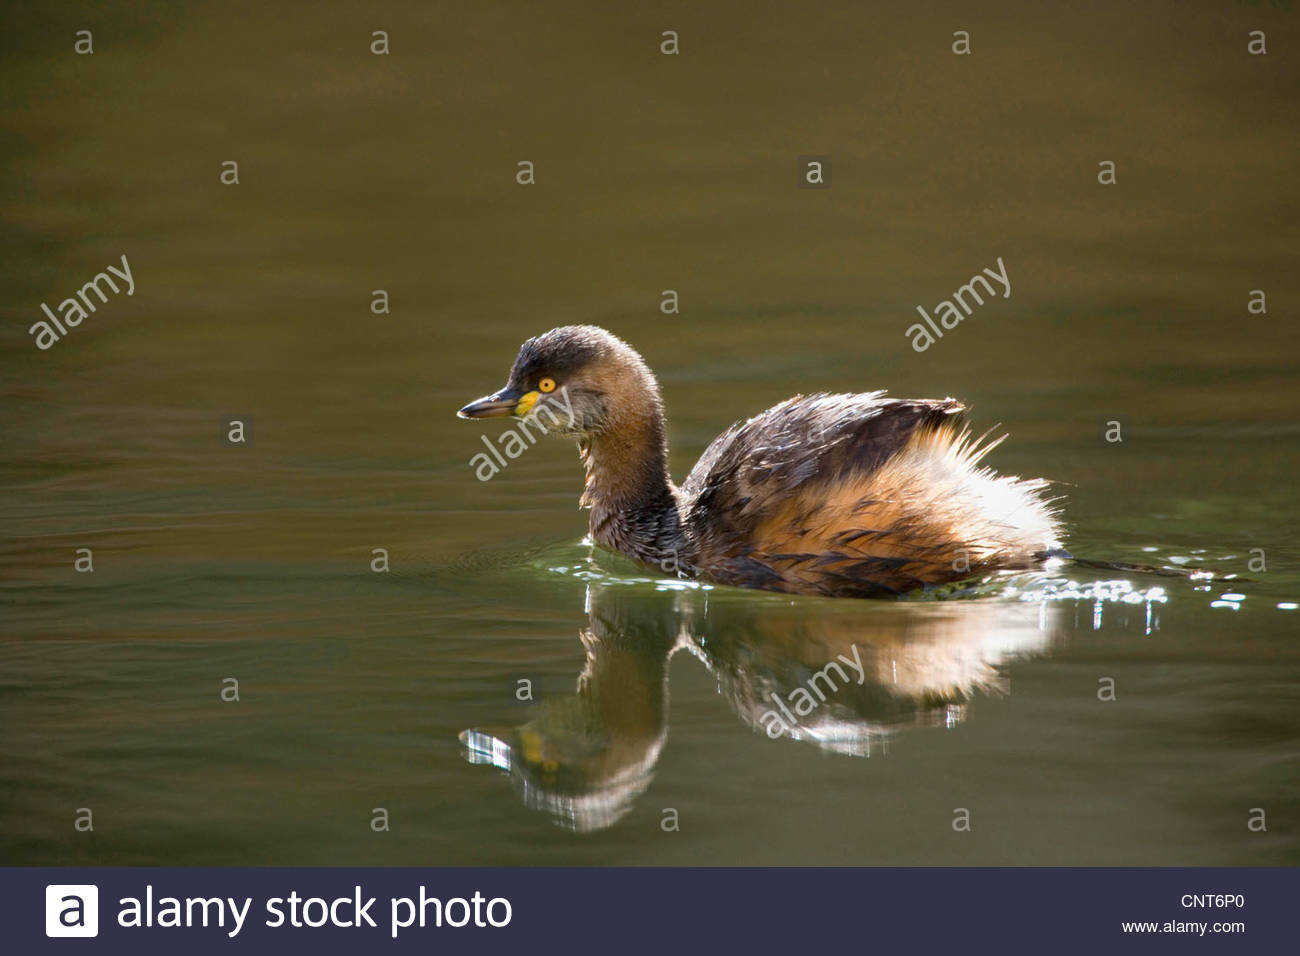 Australian dabchick (Tachybaptus novaehollandiae), adult Australasian Grebe in breeding plumage swims in a permanent - Stock Image